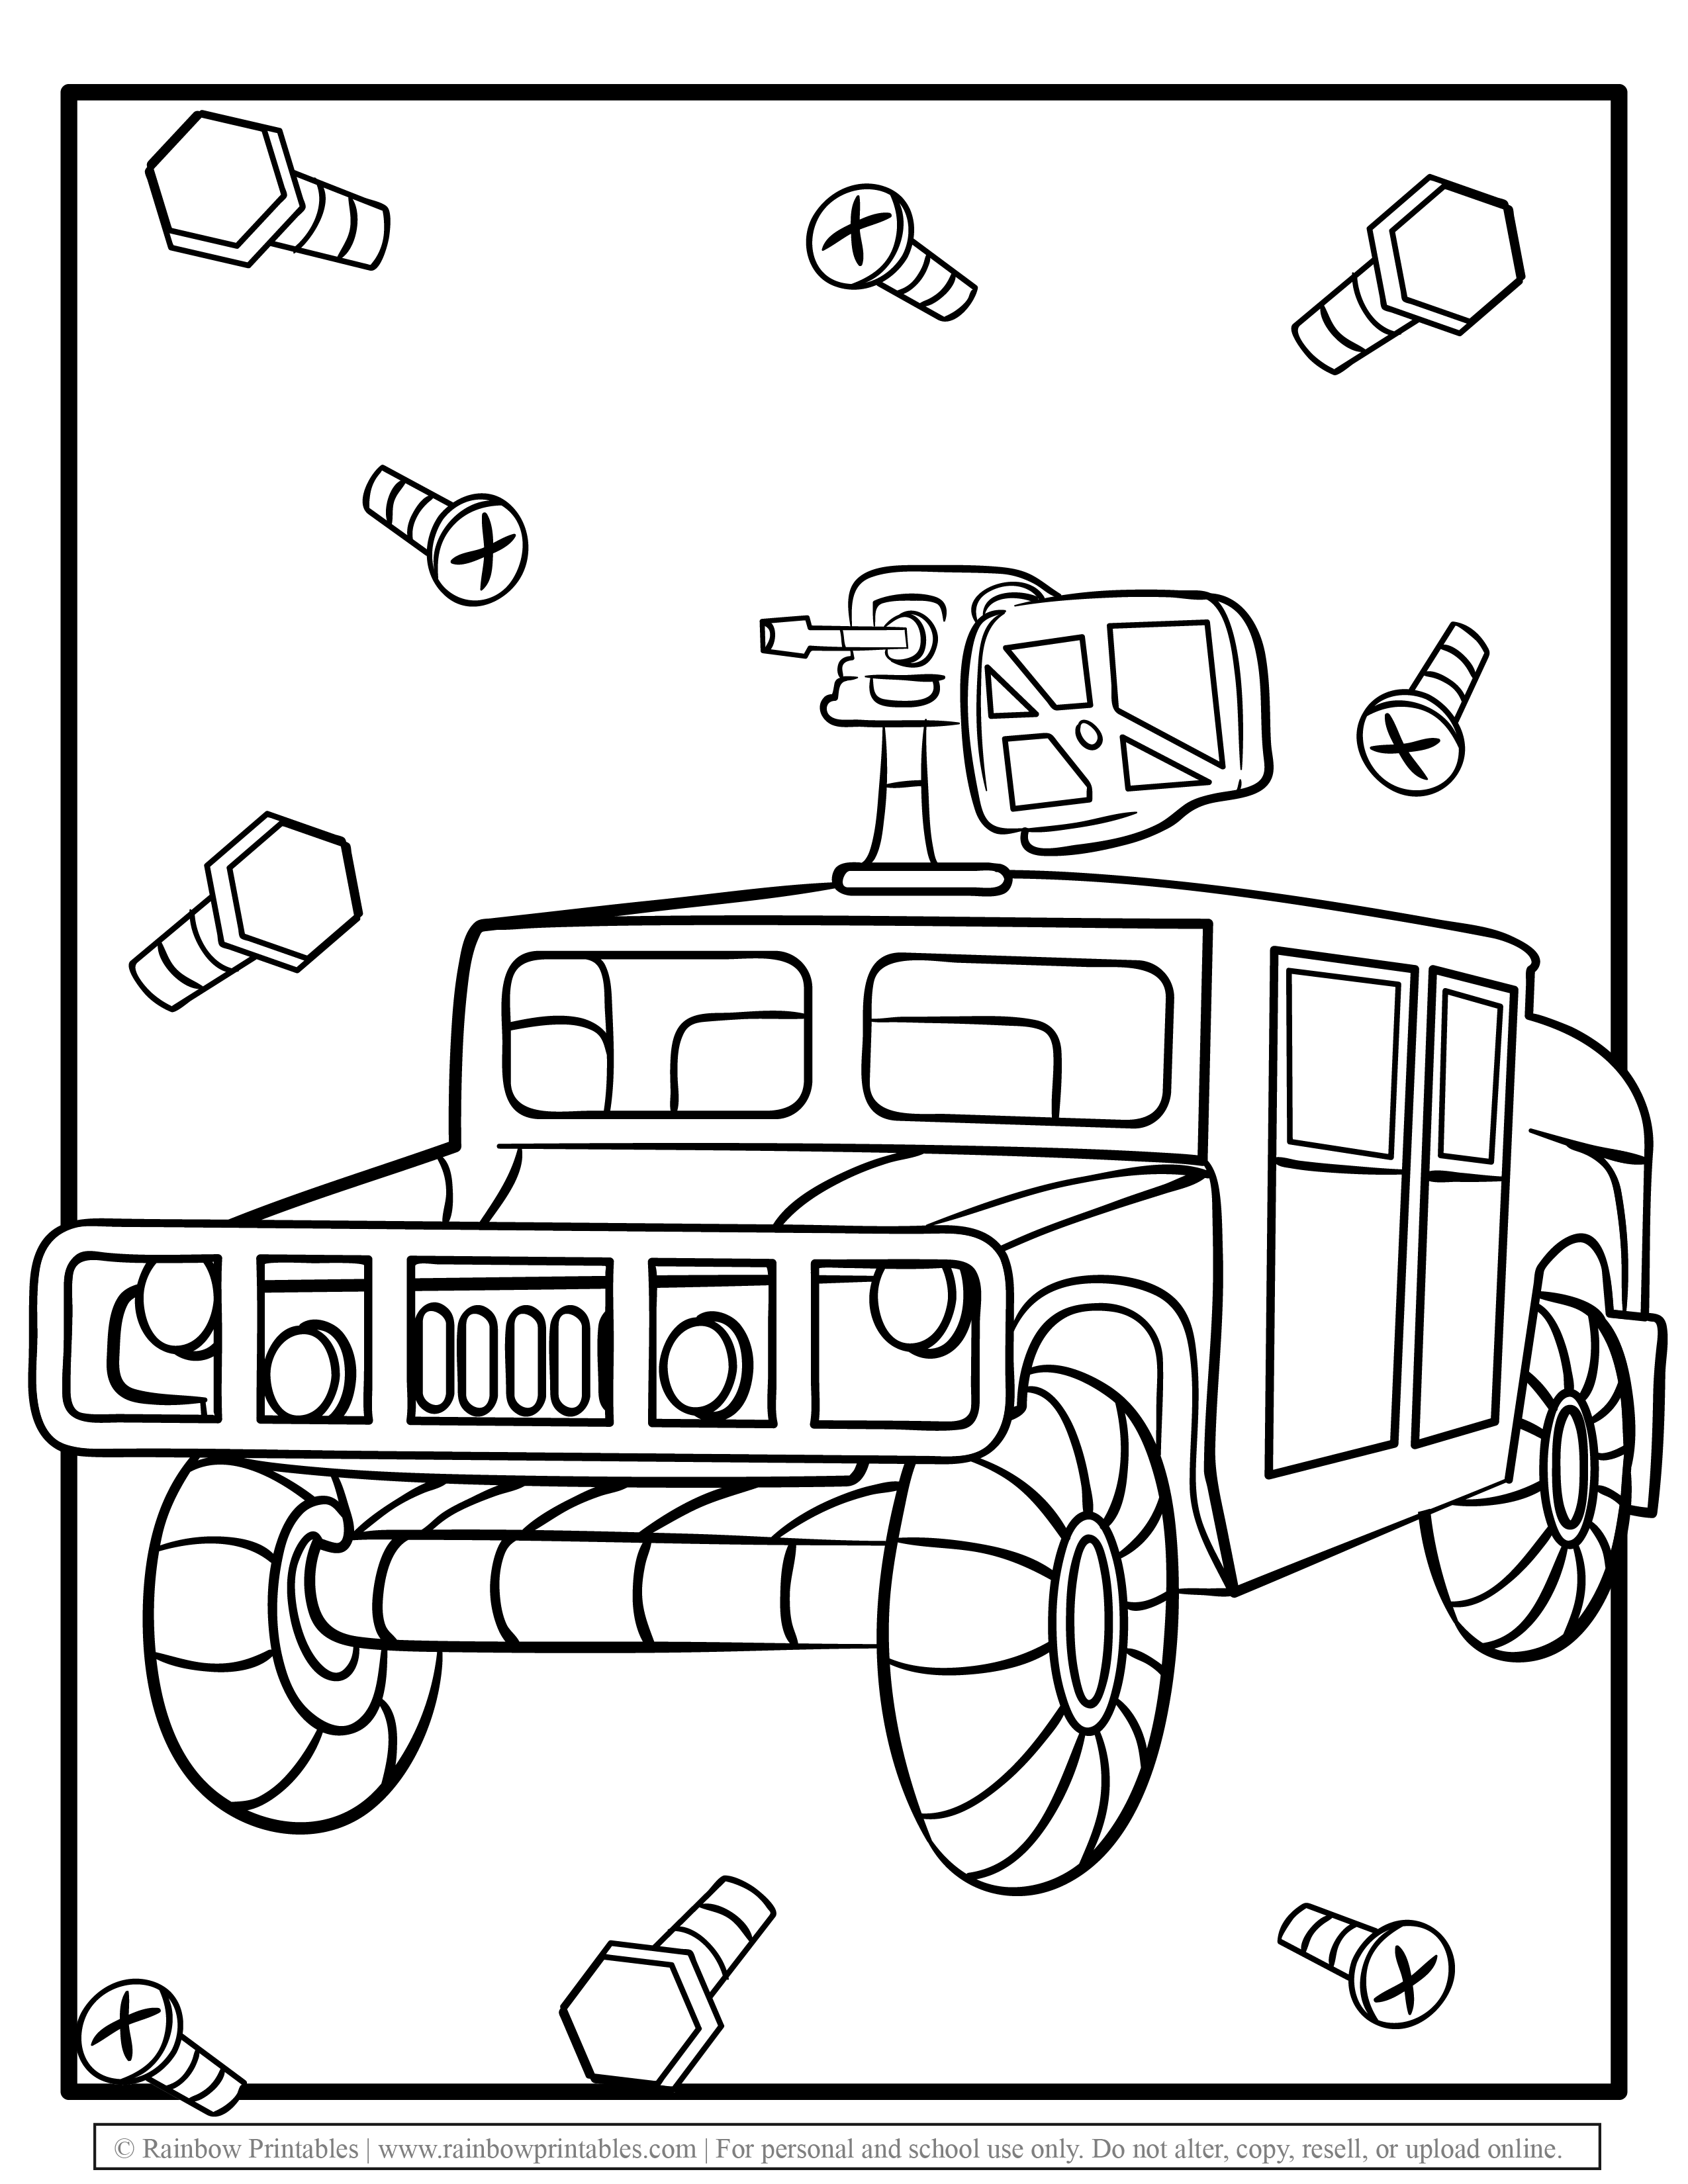 Military Hummer Tank Machine Car Gun Nuts Bolts Free Coloring Pages for Kids Drawing Activities Line Art Illustration